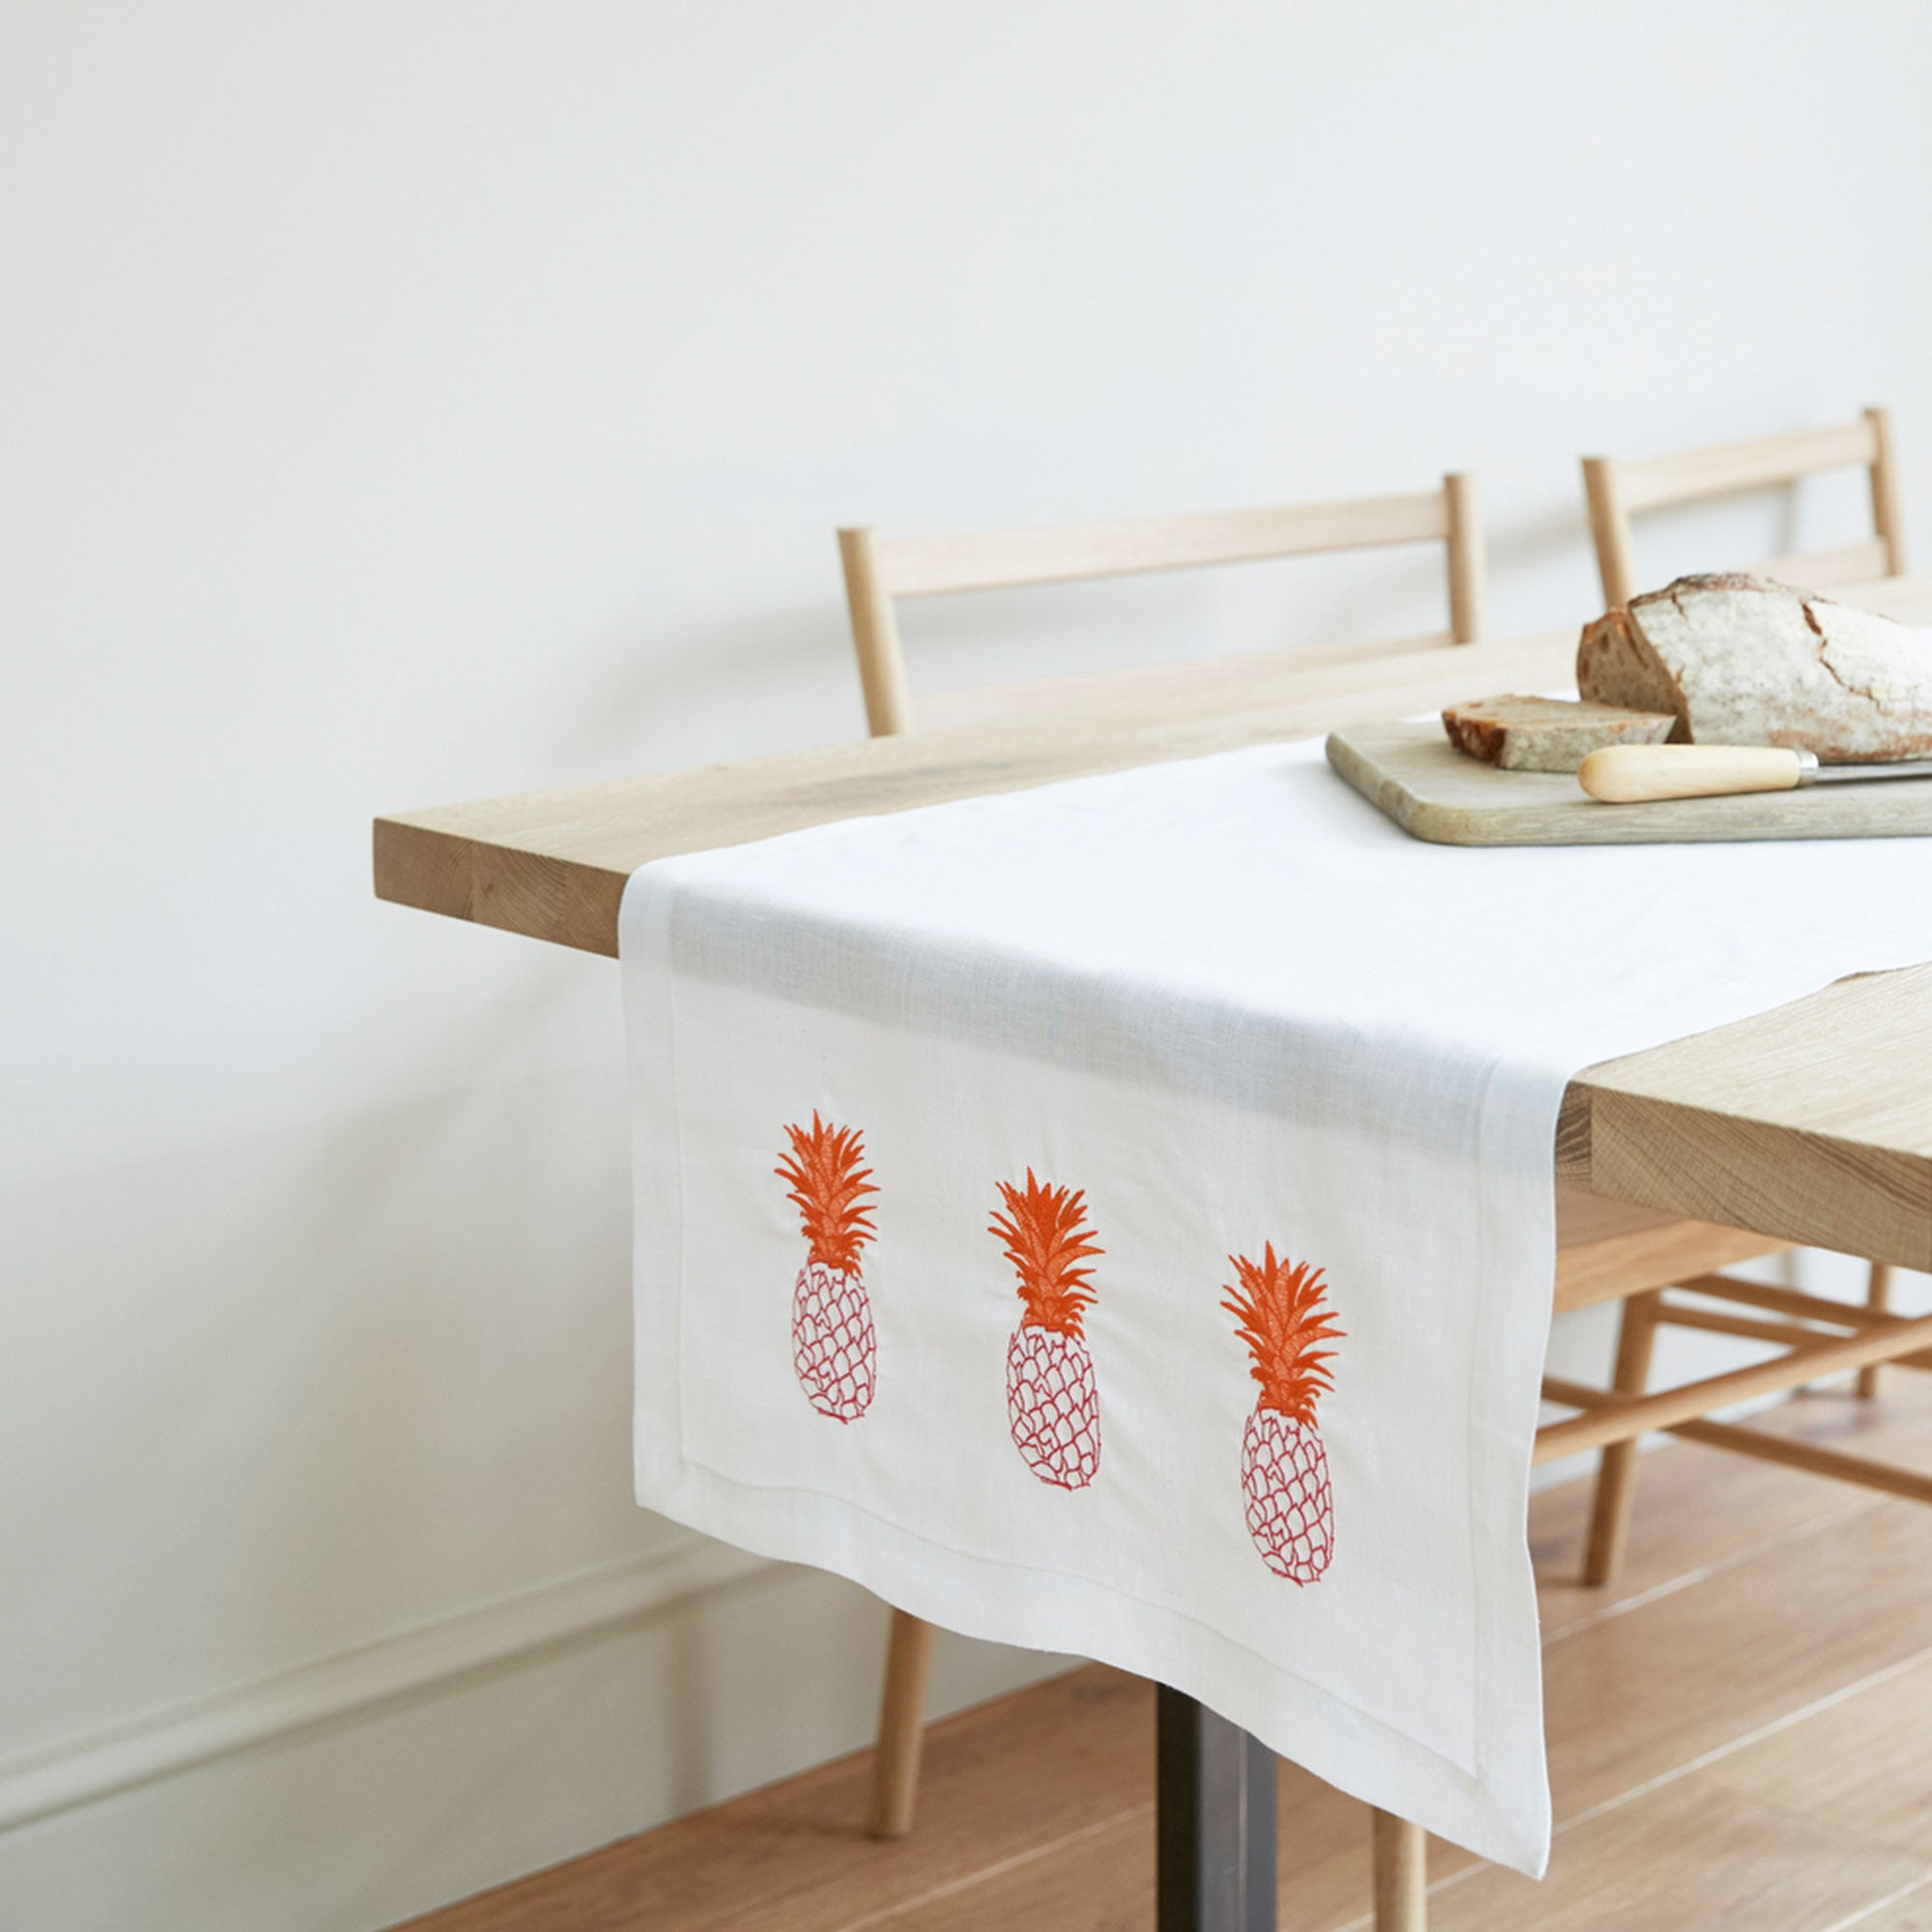 Pineapple Embroidered Linen Table Runner Orange Pink Pineapple Motif Fine Cell Work